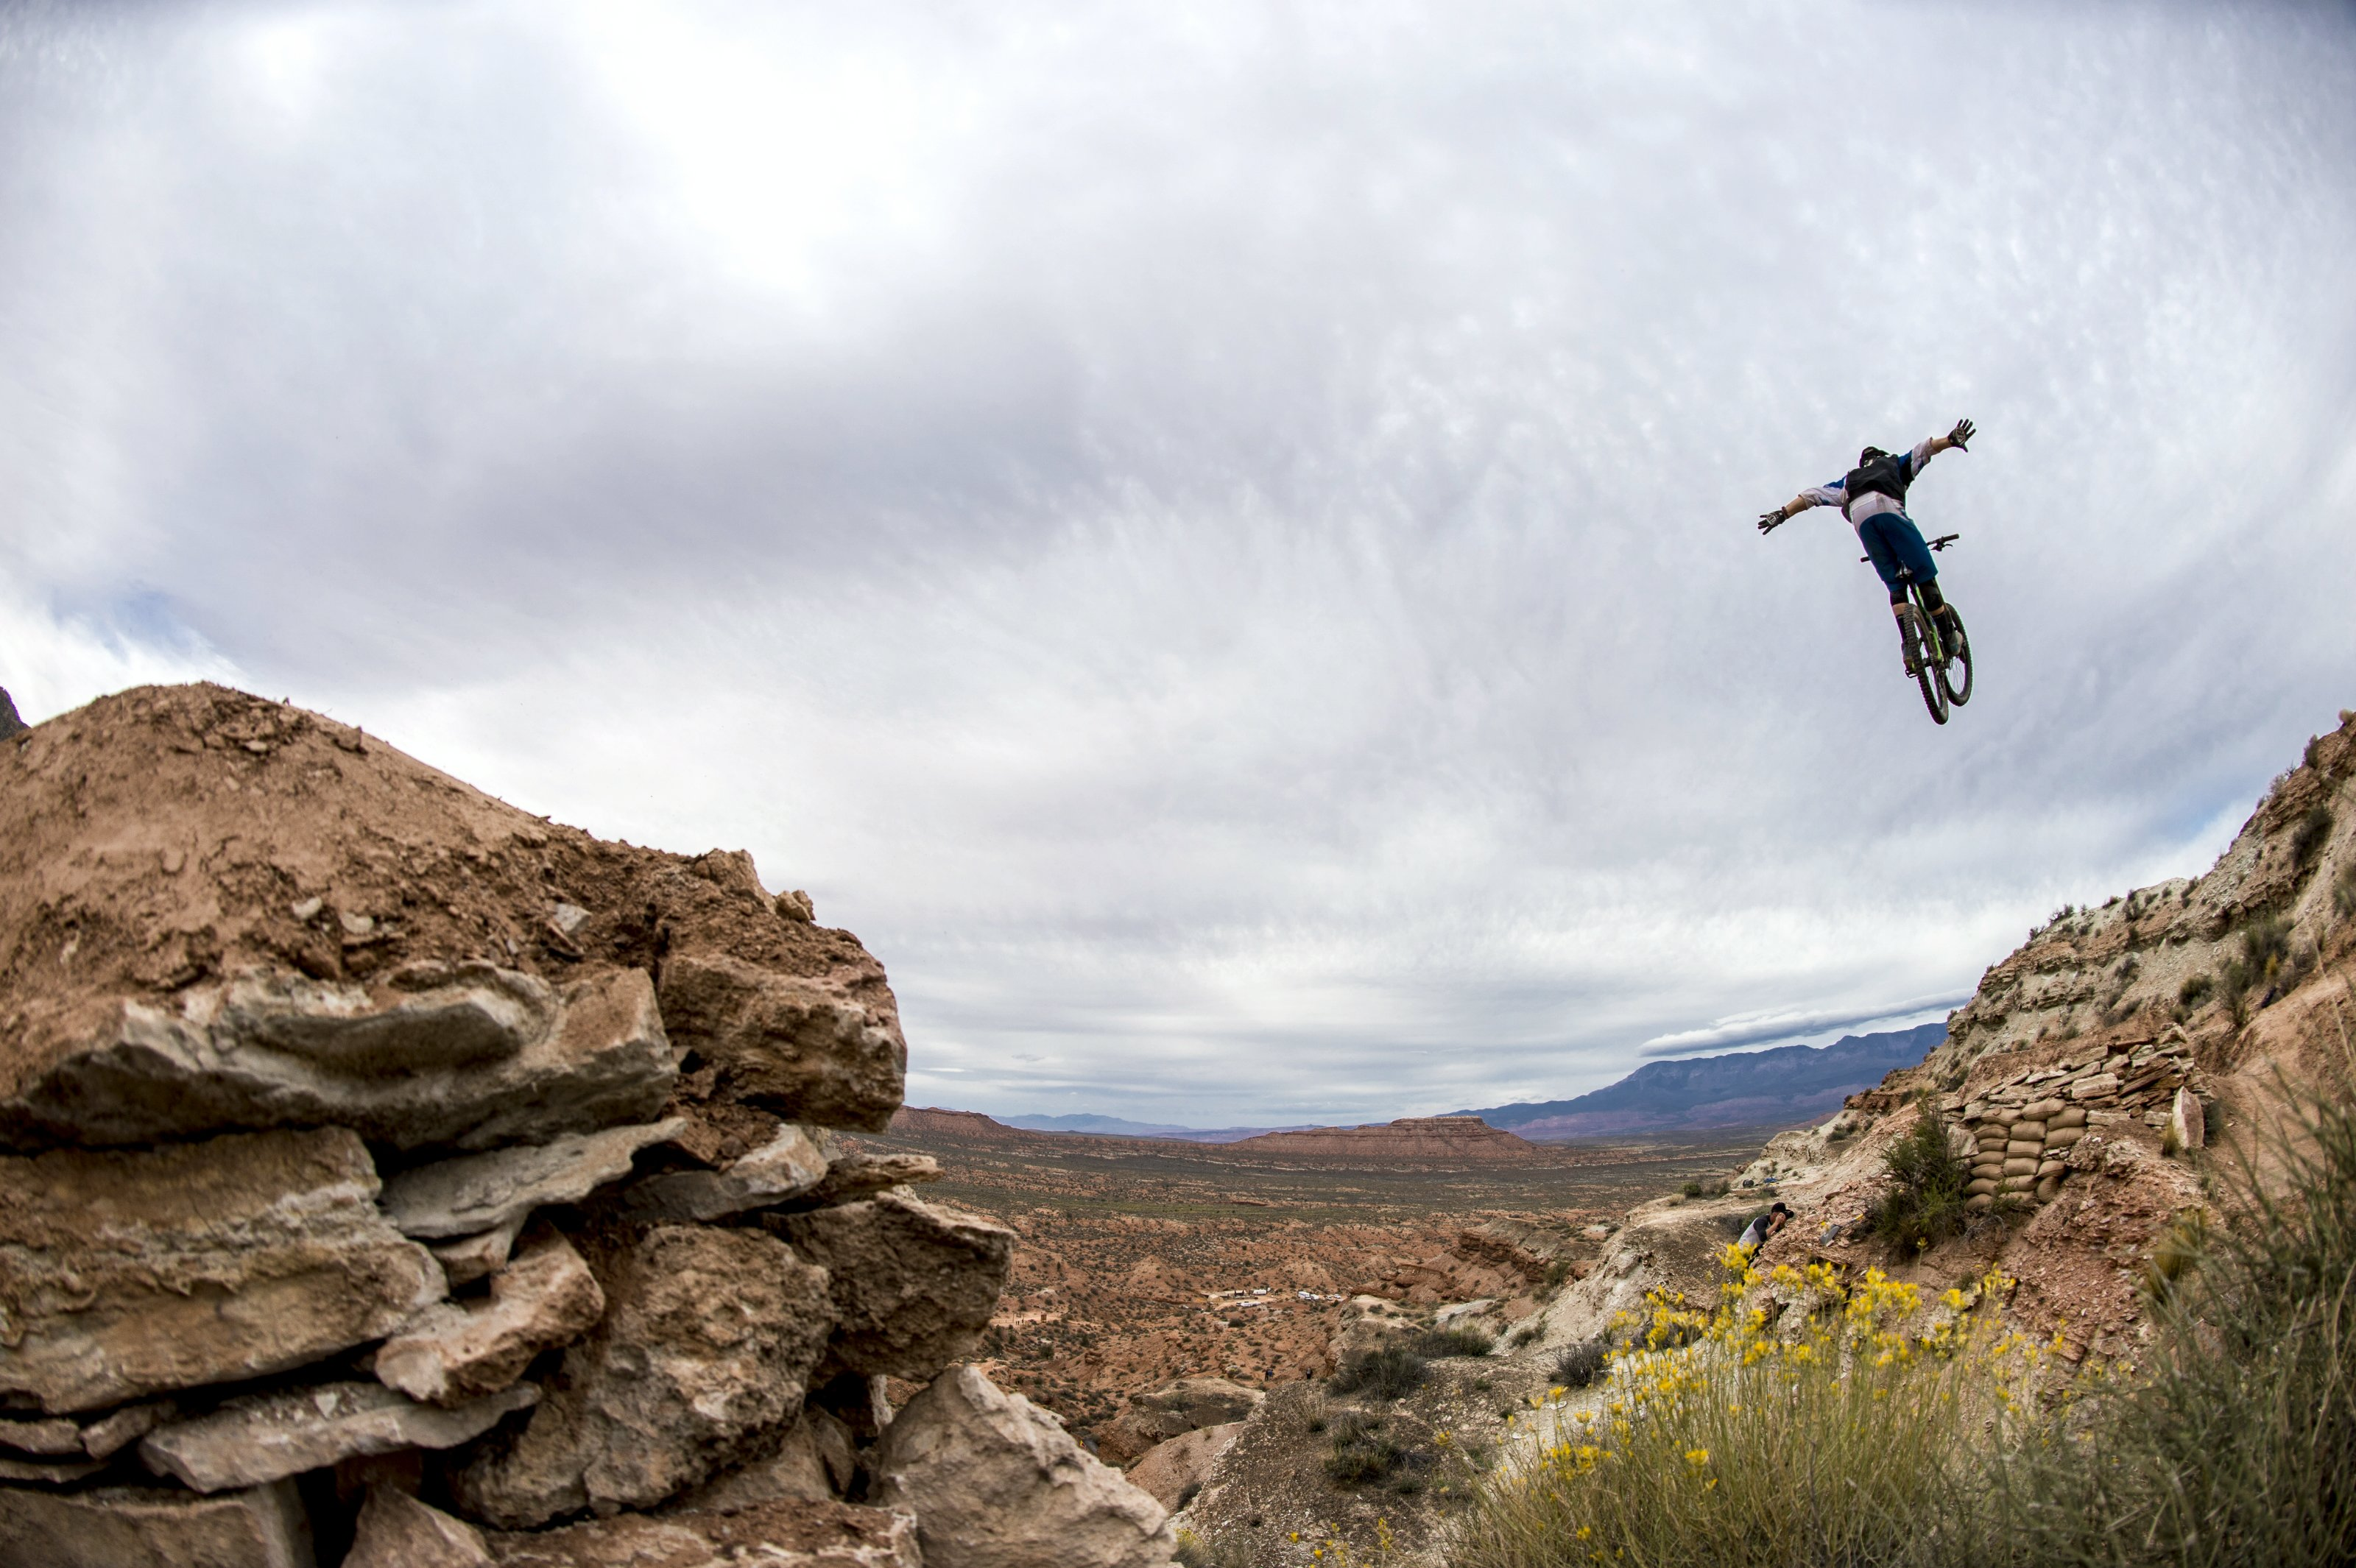 Tom Vansteenbergen jumps at Red Bull Rampage, in Virgin, UT, USA, on 9 October, 2013. // Ian Hylands/Red Bull Content Pool // P-20131010-00001 // Usage for editorial use only // Please go to www.redbullcontentpool.com for further information. //